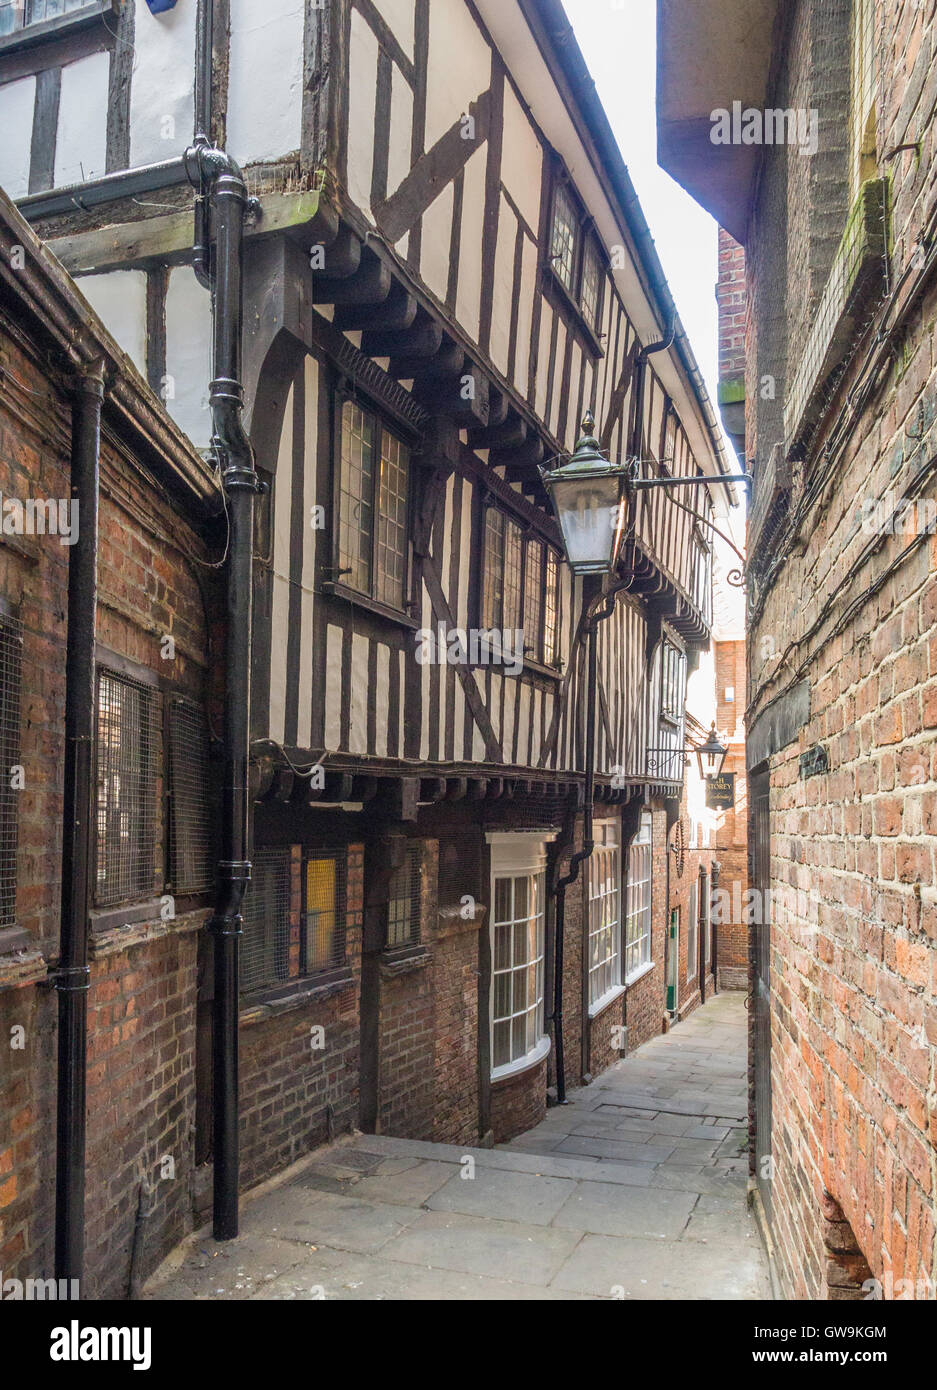 Lady Peckett's Yard, named after the wife of a Lord Mayor, is a narrow mediaeval 'Snickelway' in the - Stock Image